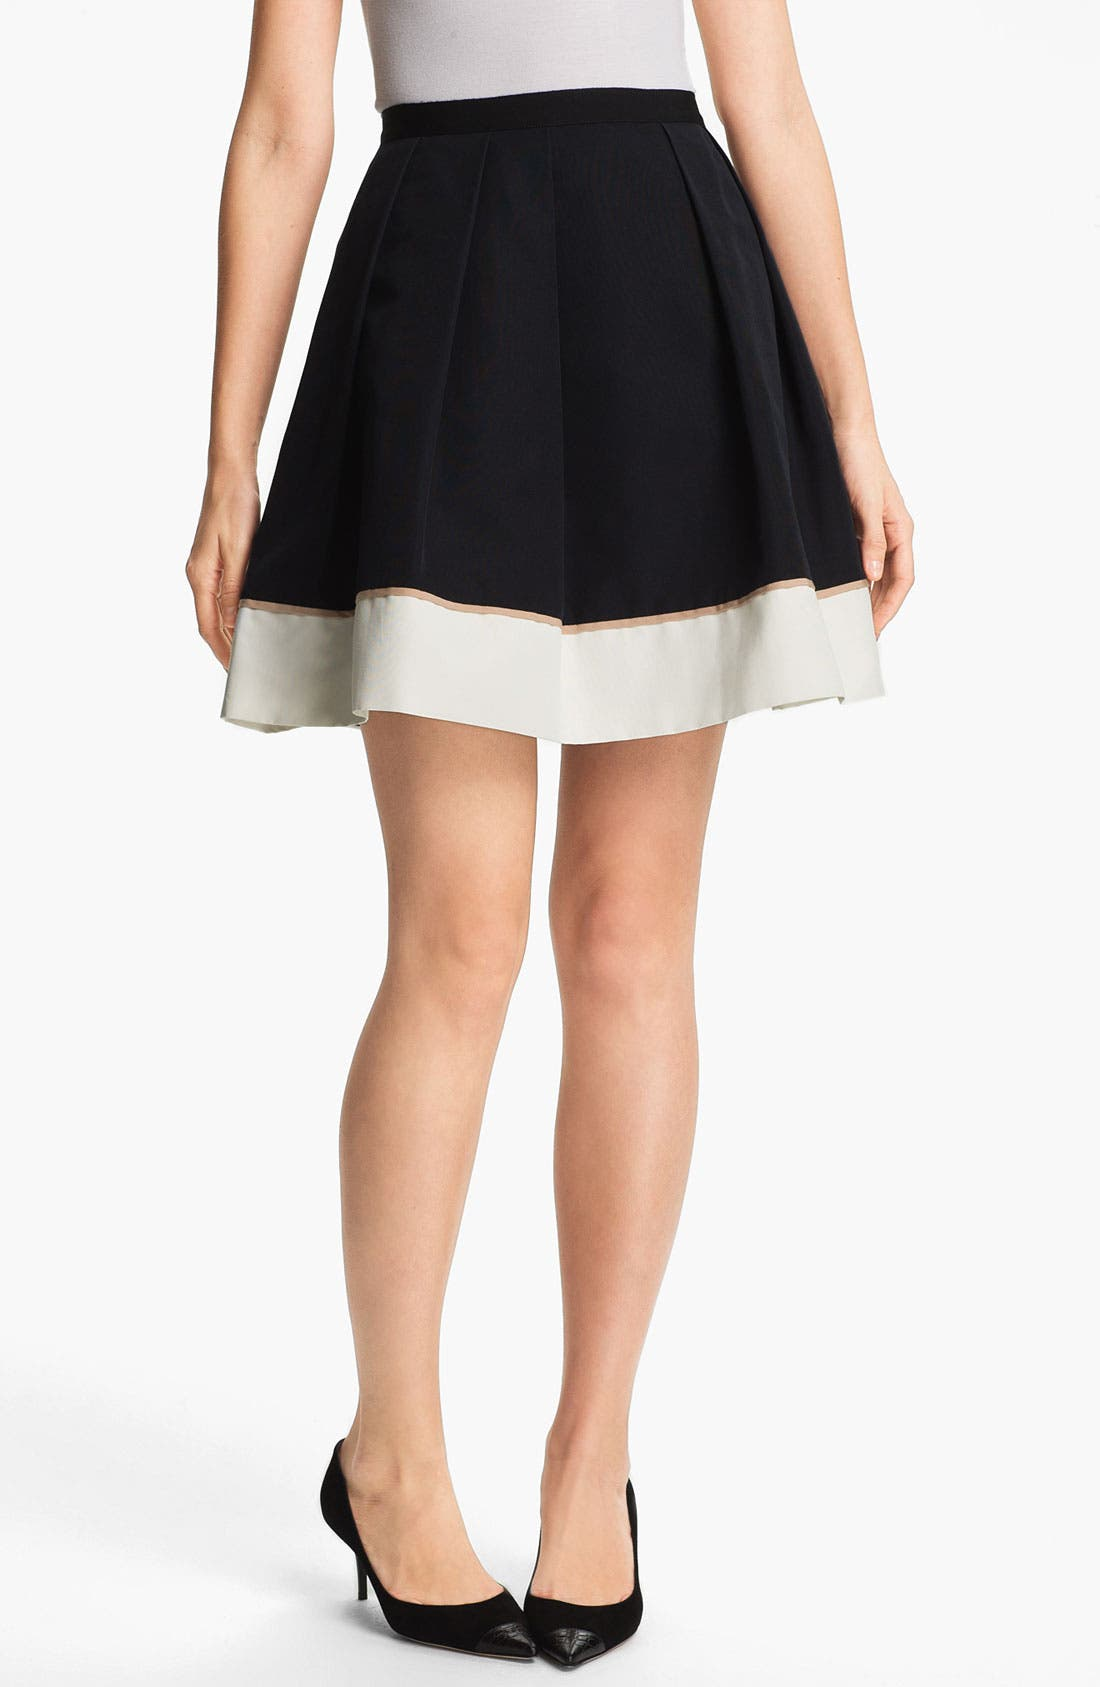 Alternate Image 1 Selected - Miss Wu Hem Detail Faille Skirt (Nordstrom Exclusive)